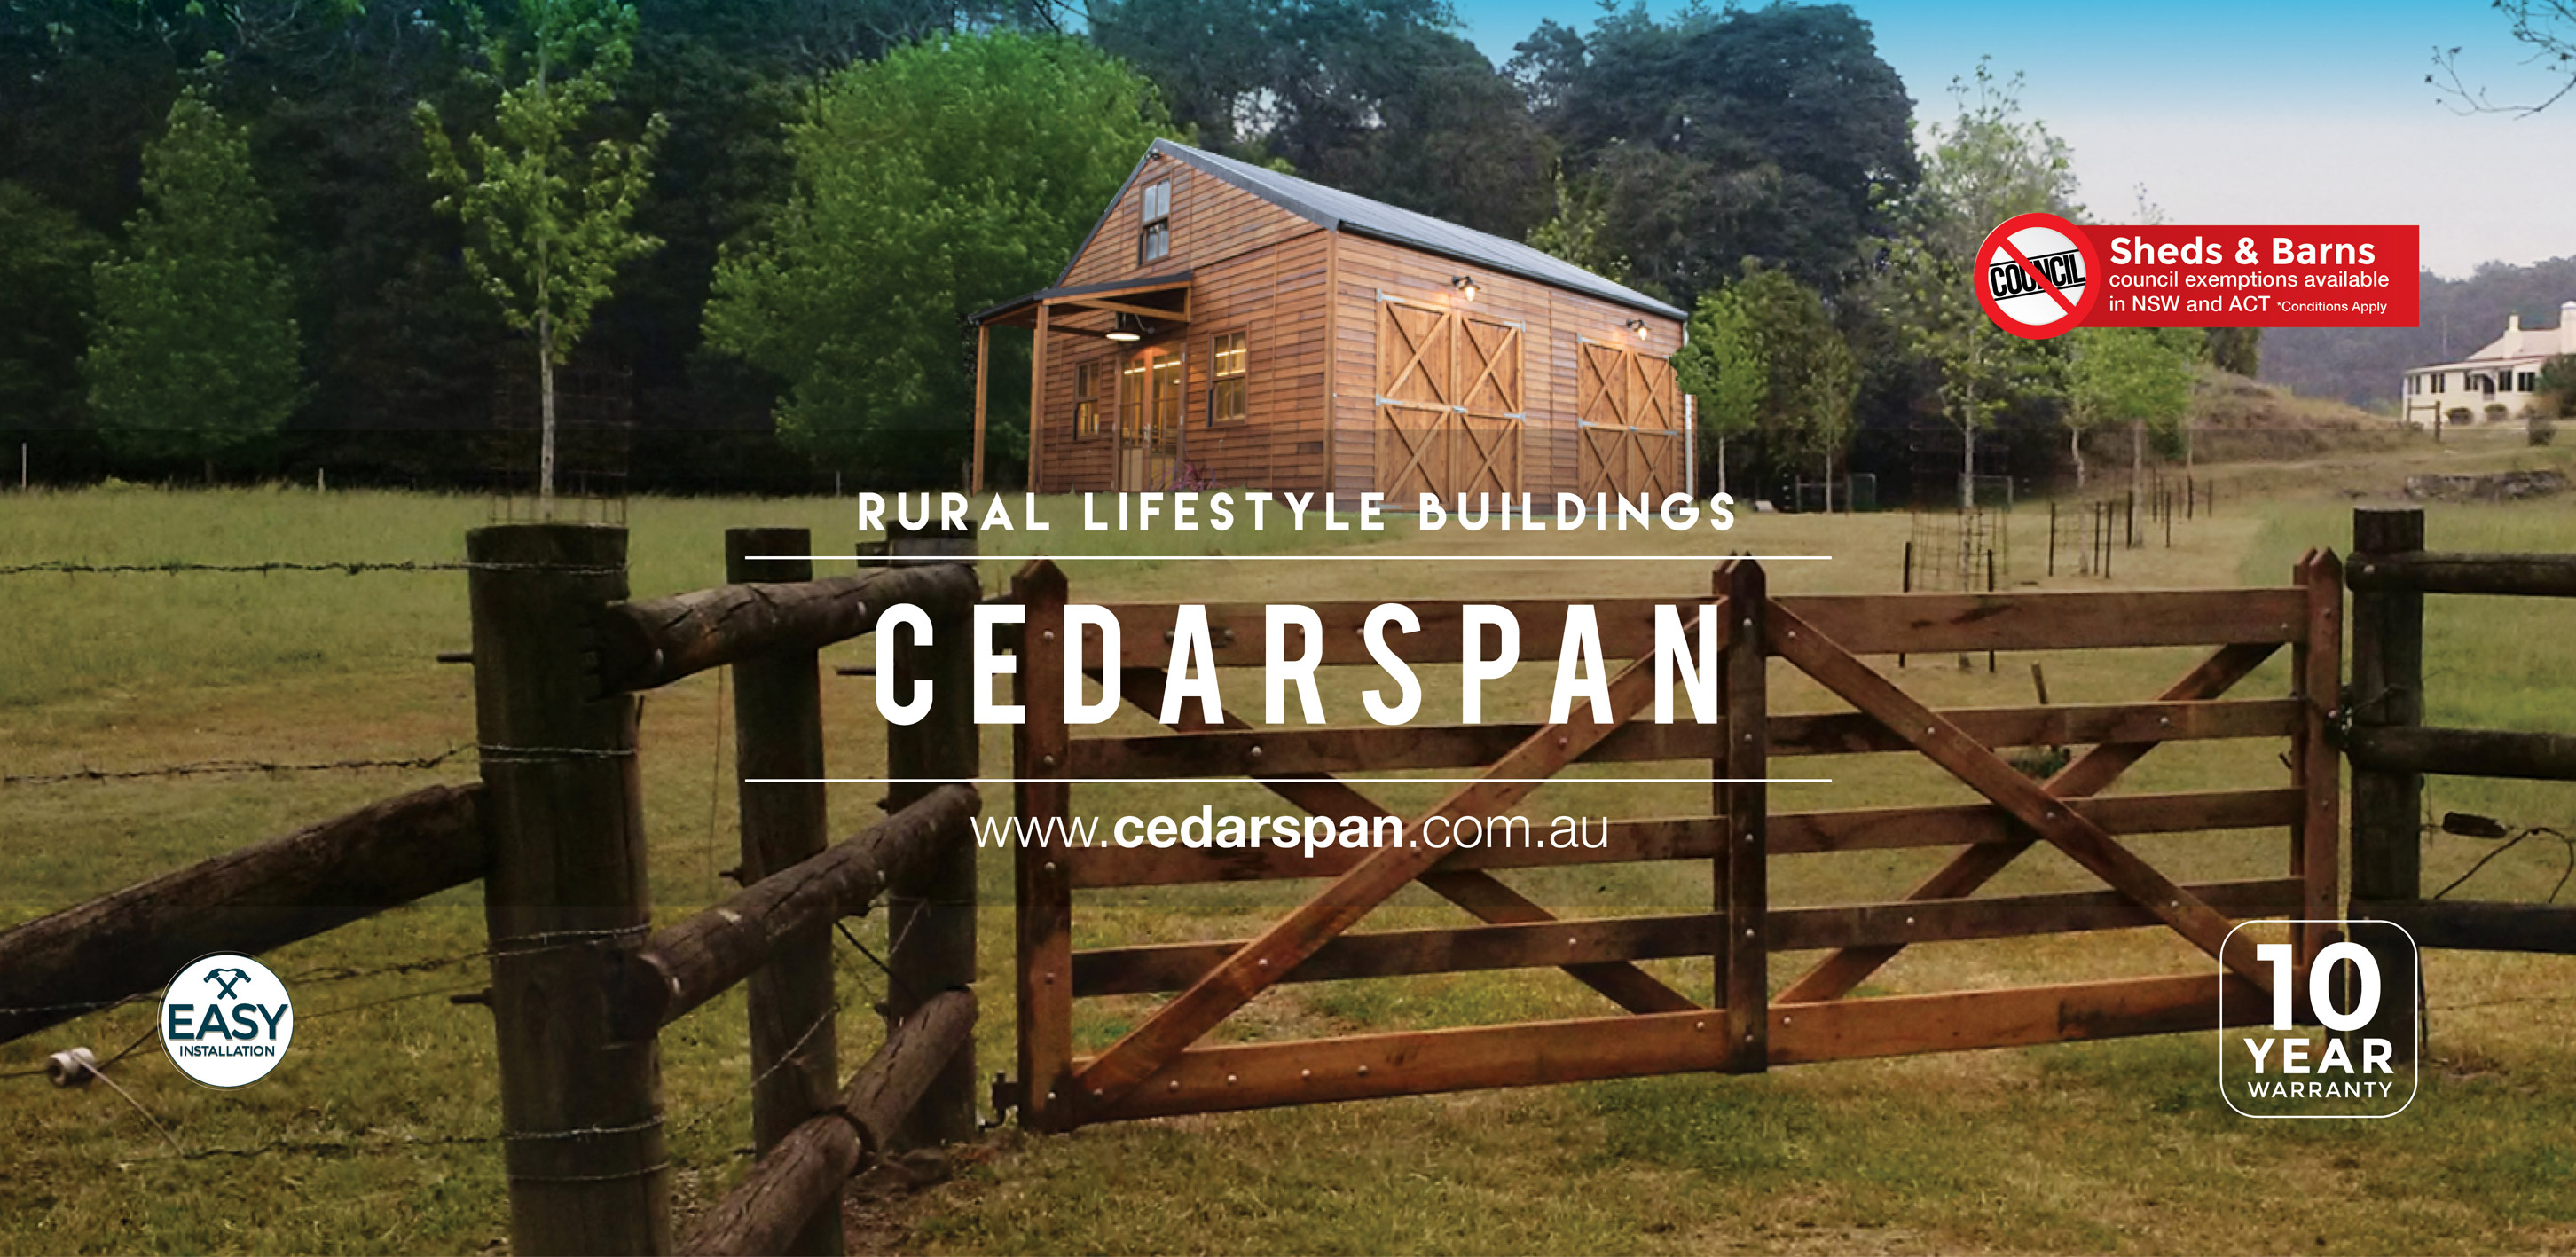 Prefab timber cabin kits cottages and barns cedarspan for Rural home designs nsw